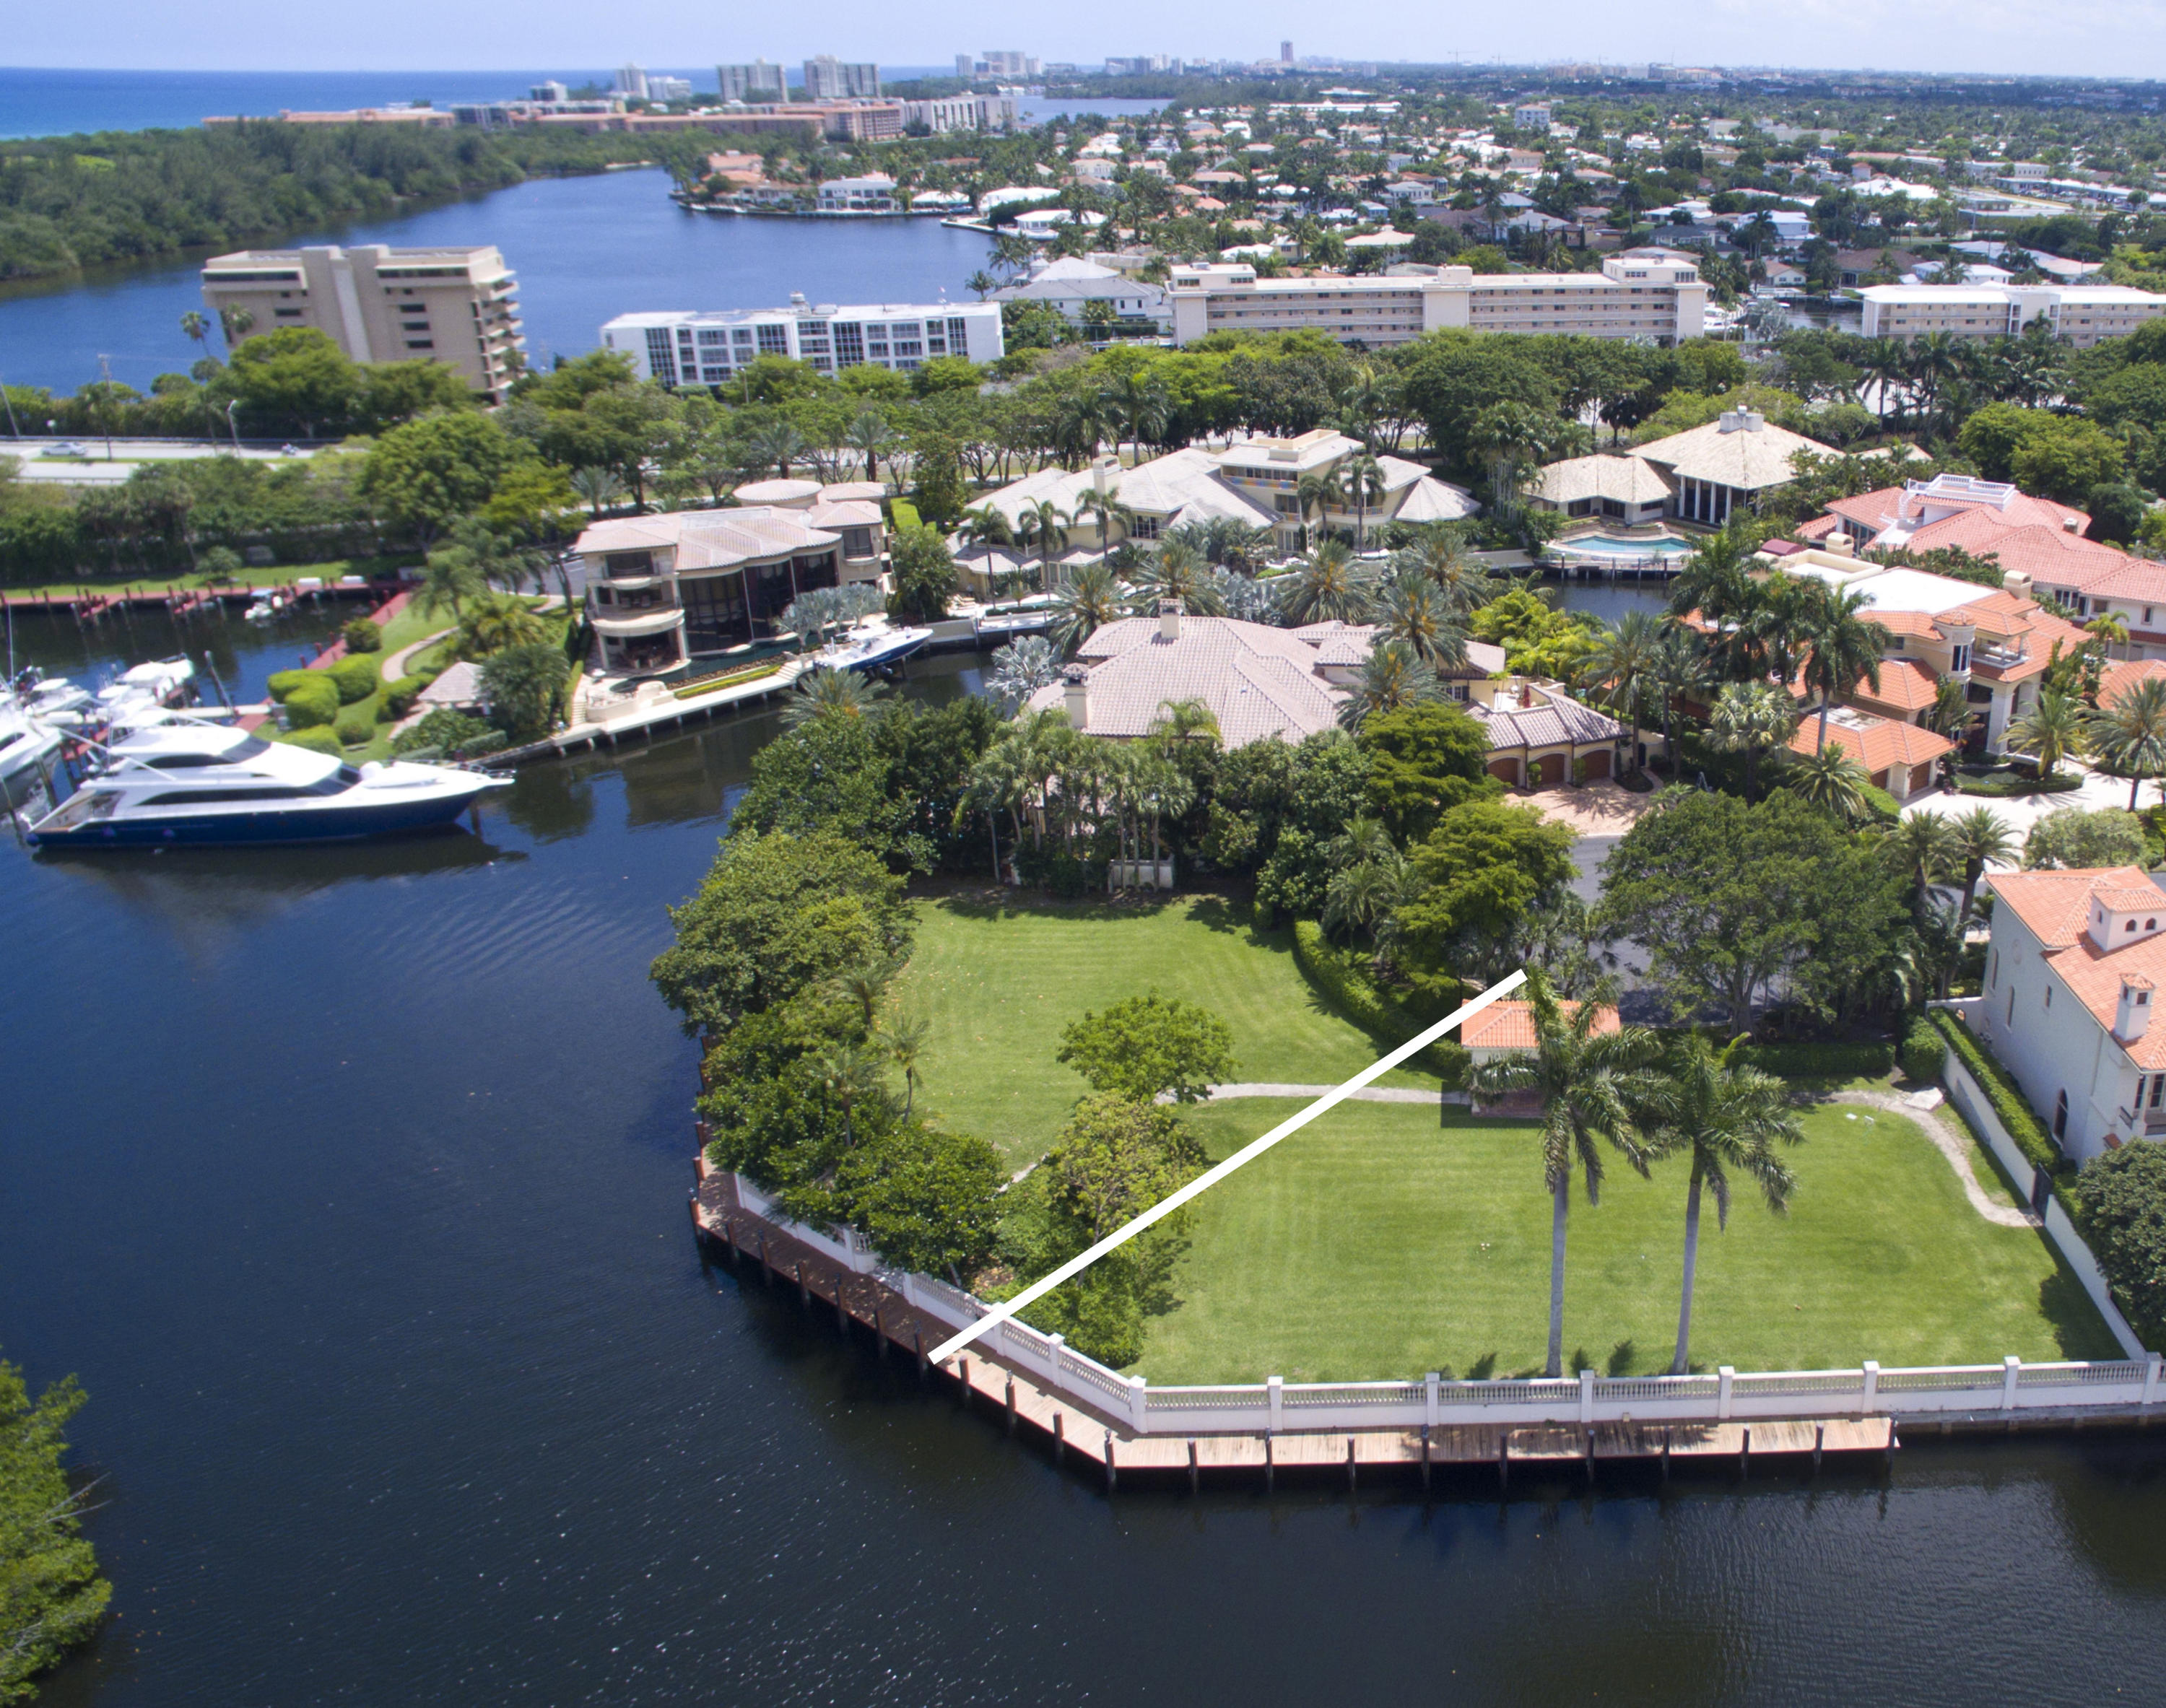 4111 Ibis Point Circle, Boca Raton, Florida 33431, ,Land,For Sale,Ibis Point,RX-10504539